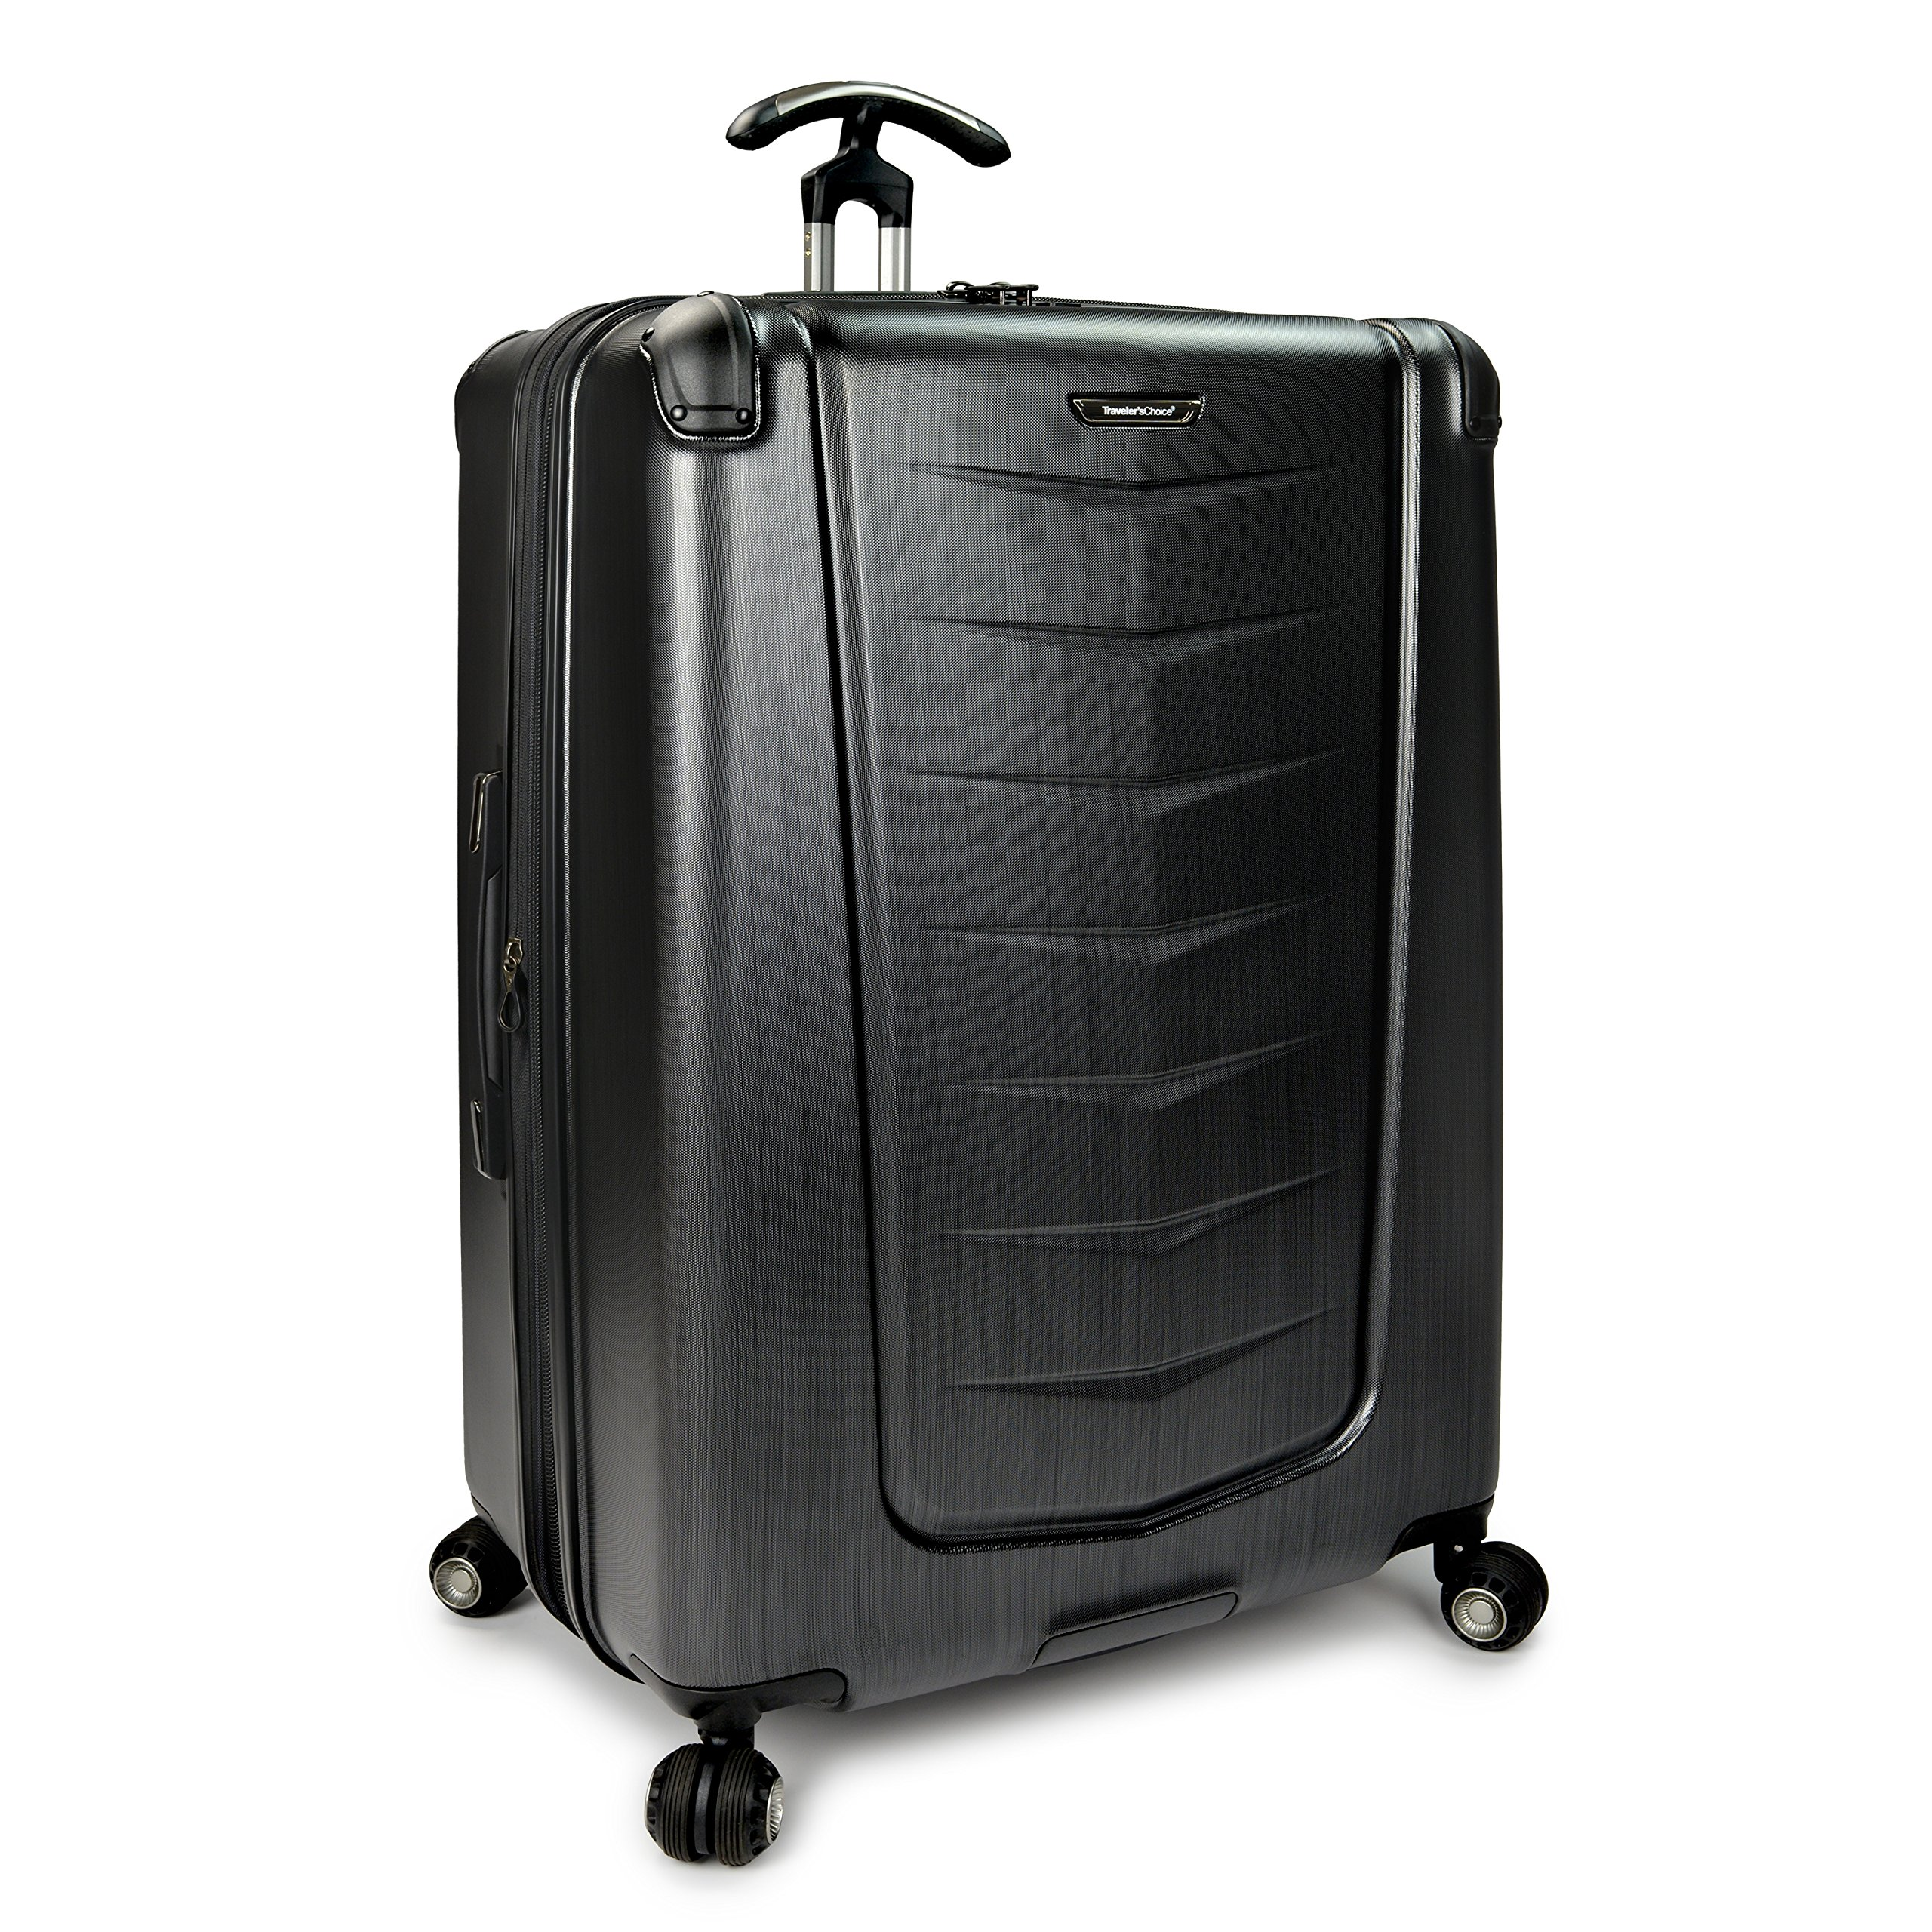 Traveler's Choice  Silverwood Polycarbonate Hardside Expandable Spinner Luggage Case - Brush Metal-Inch) by Traveler's Choice